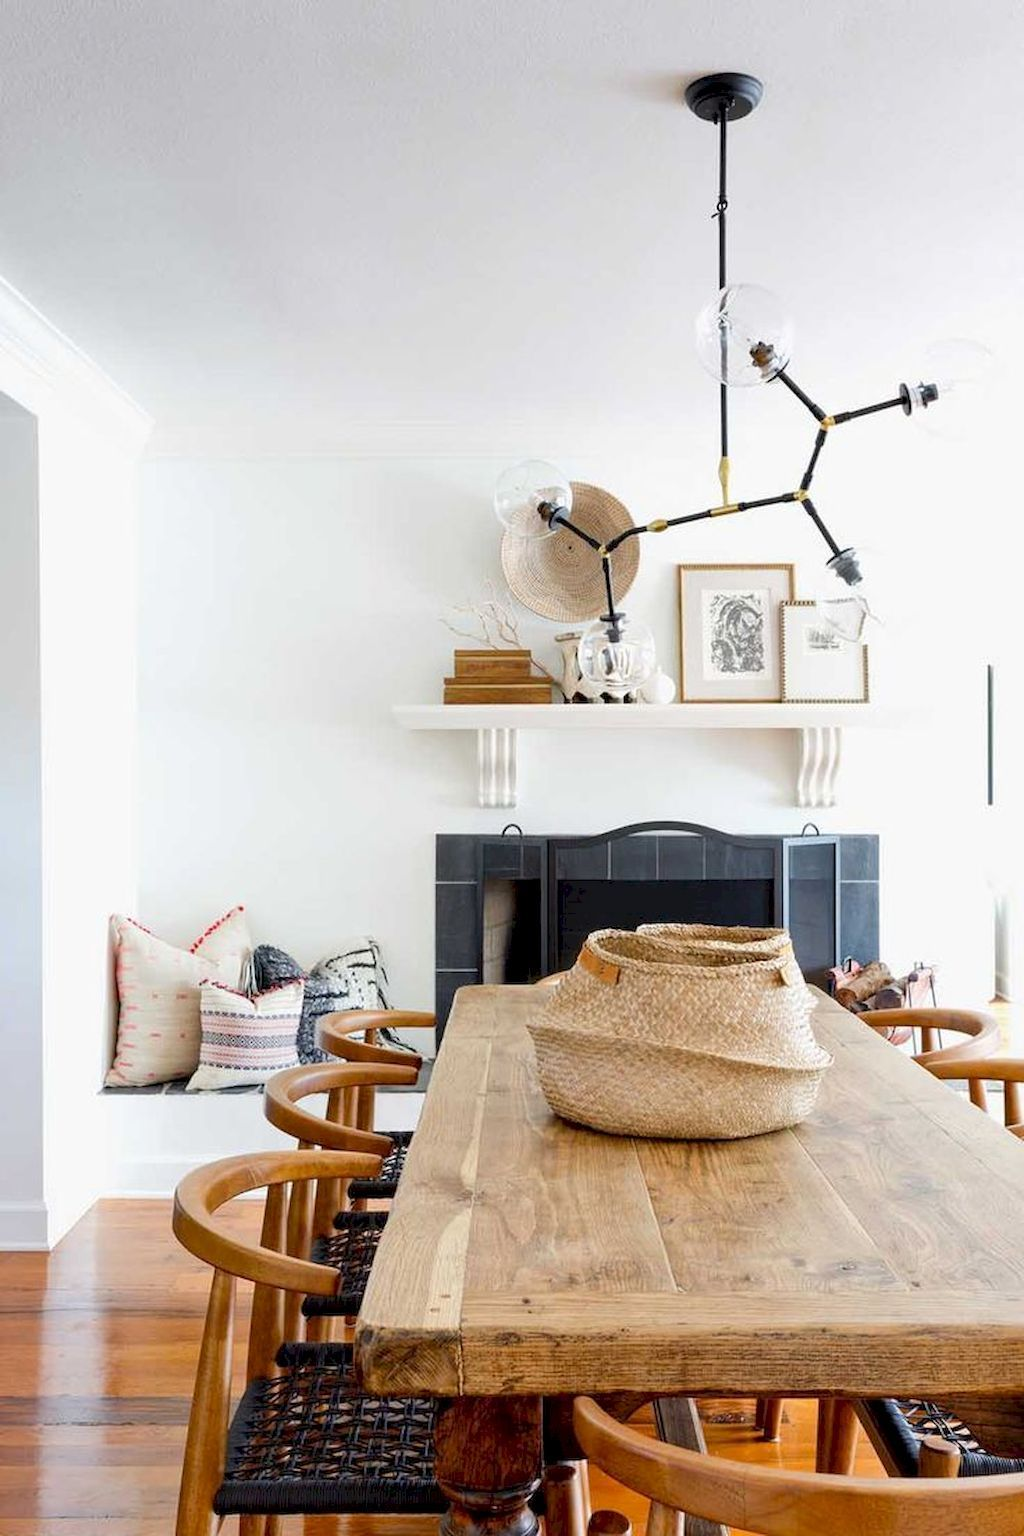 Awesome free custom farmhouse dining table ideas for the househttps oneonroom also house rh pinterest